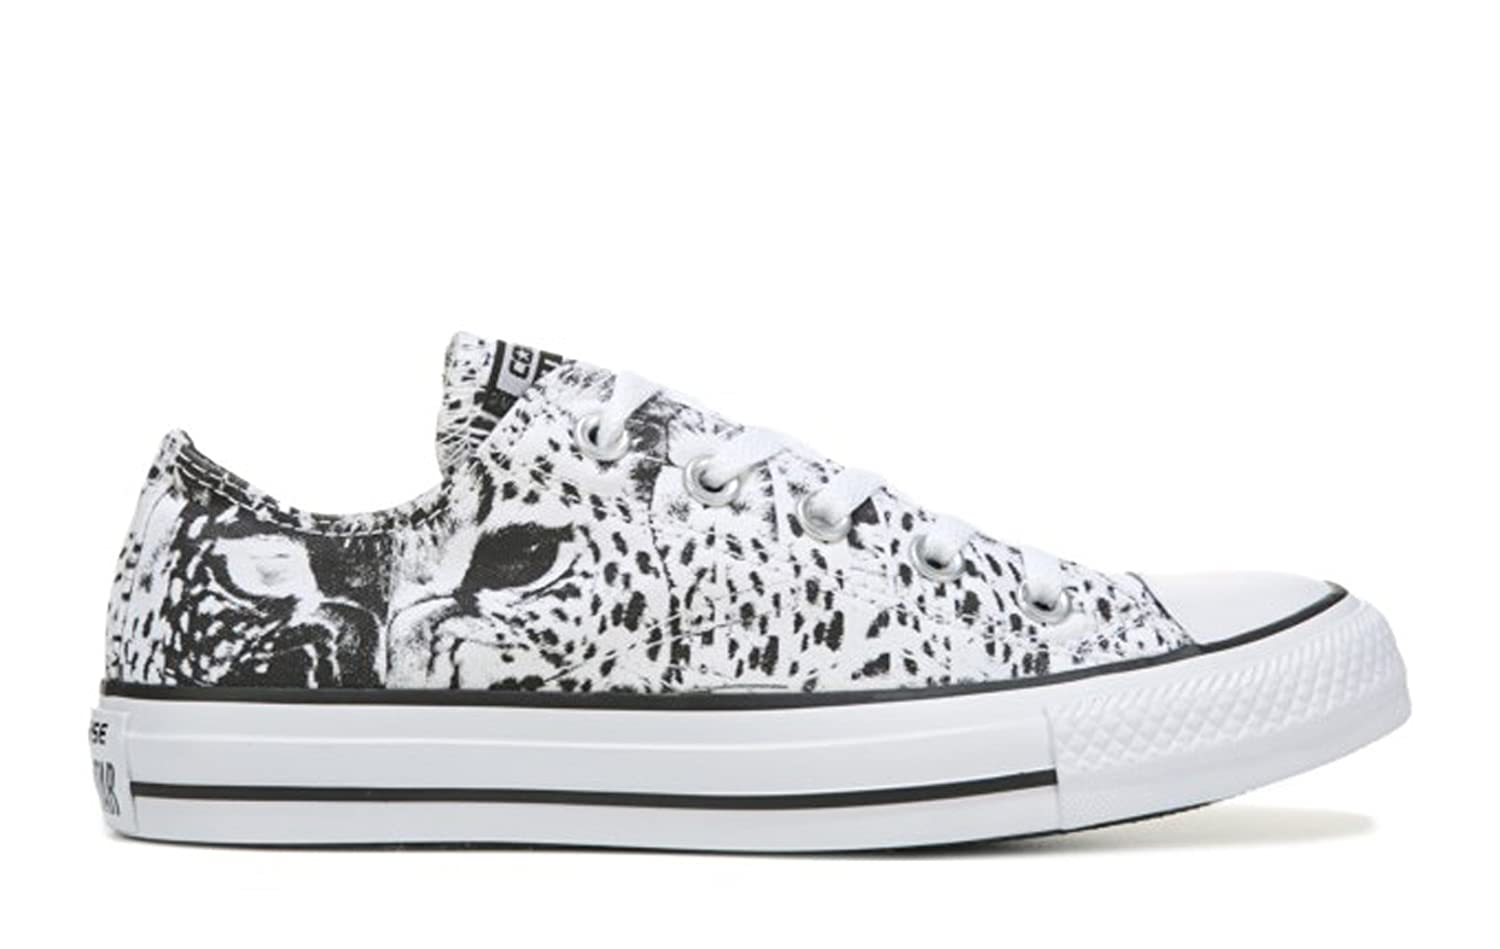 Converse Mens Chuck Taylor All Star Animal Print Ox White//Black//White 5.5 M